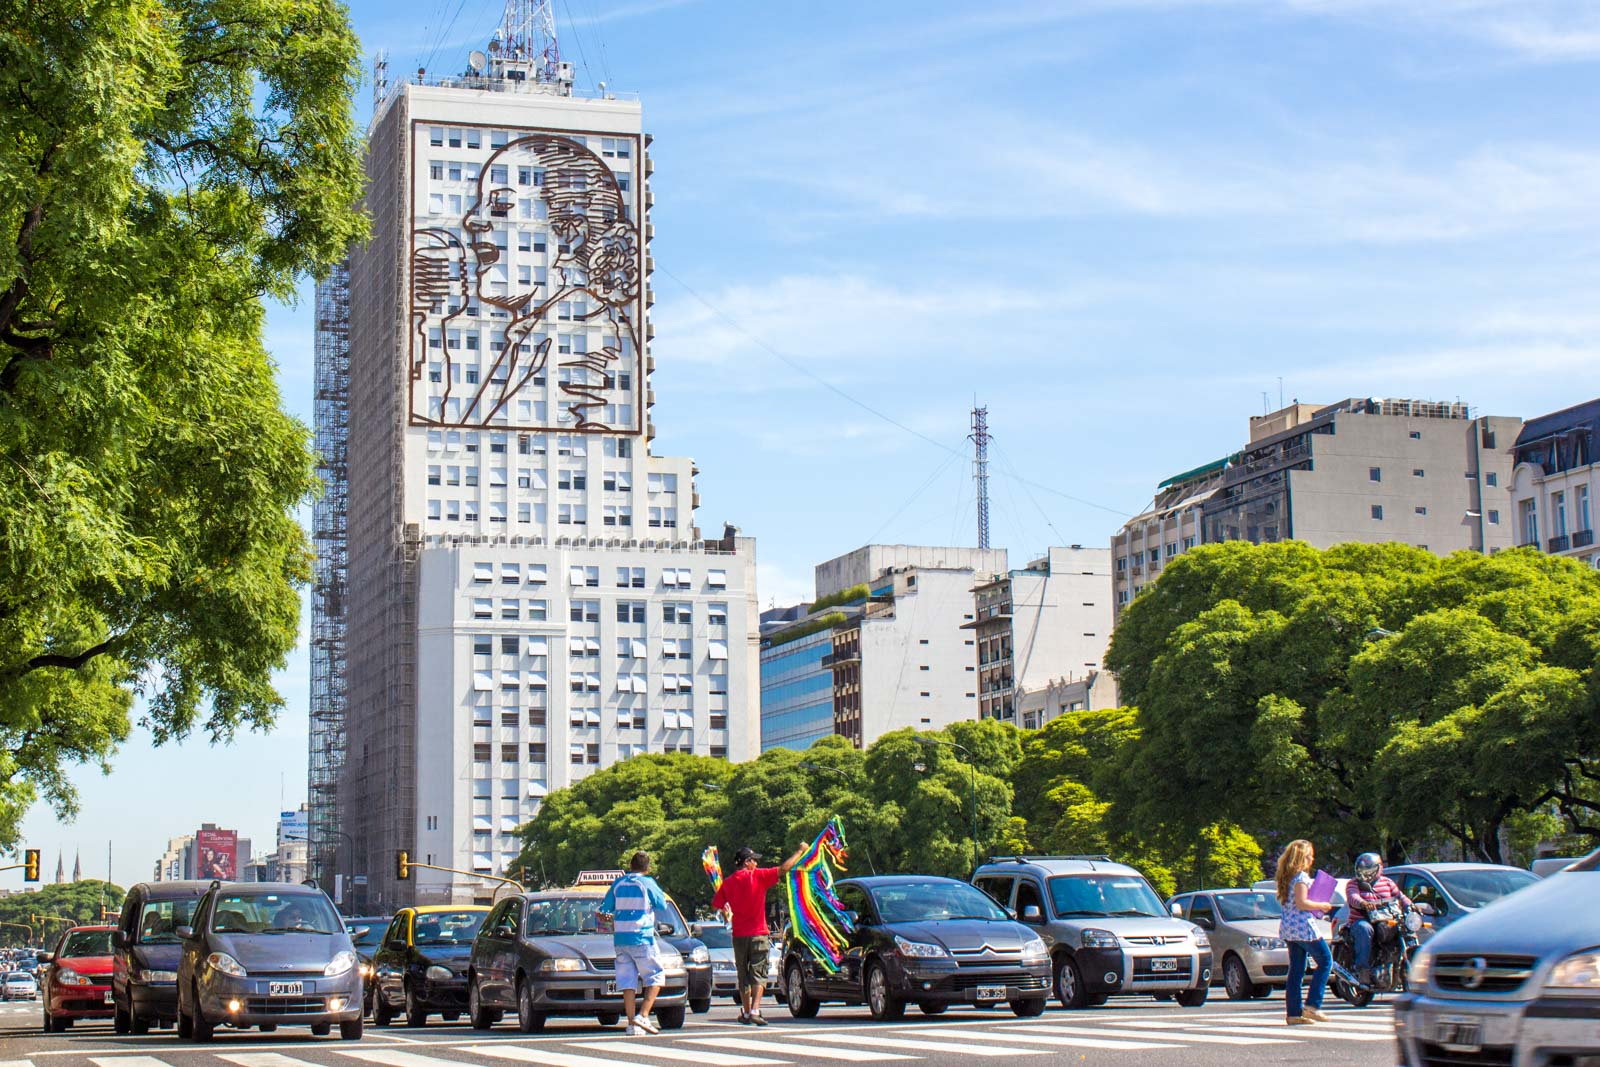 Widest avenue in the world, Buenos Aires, Argentina